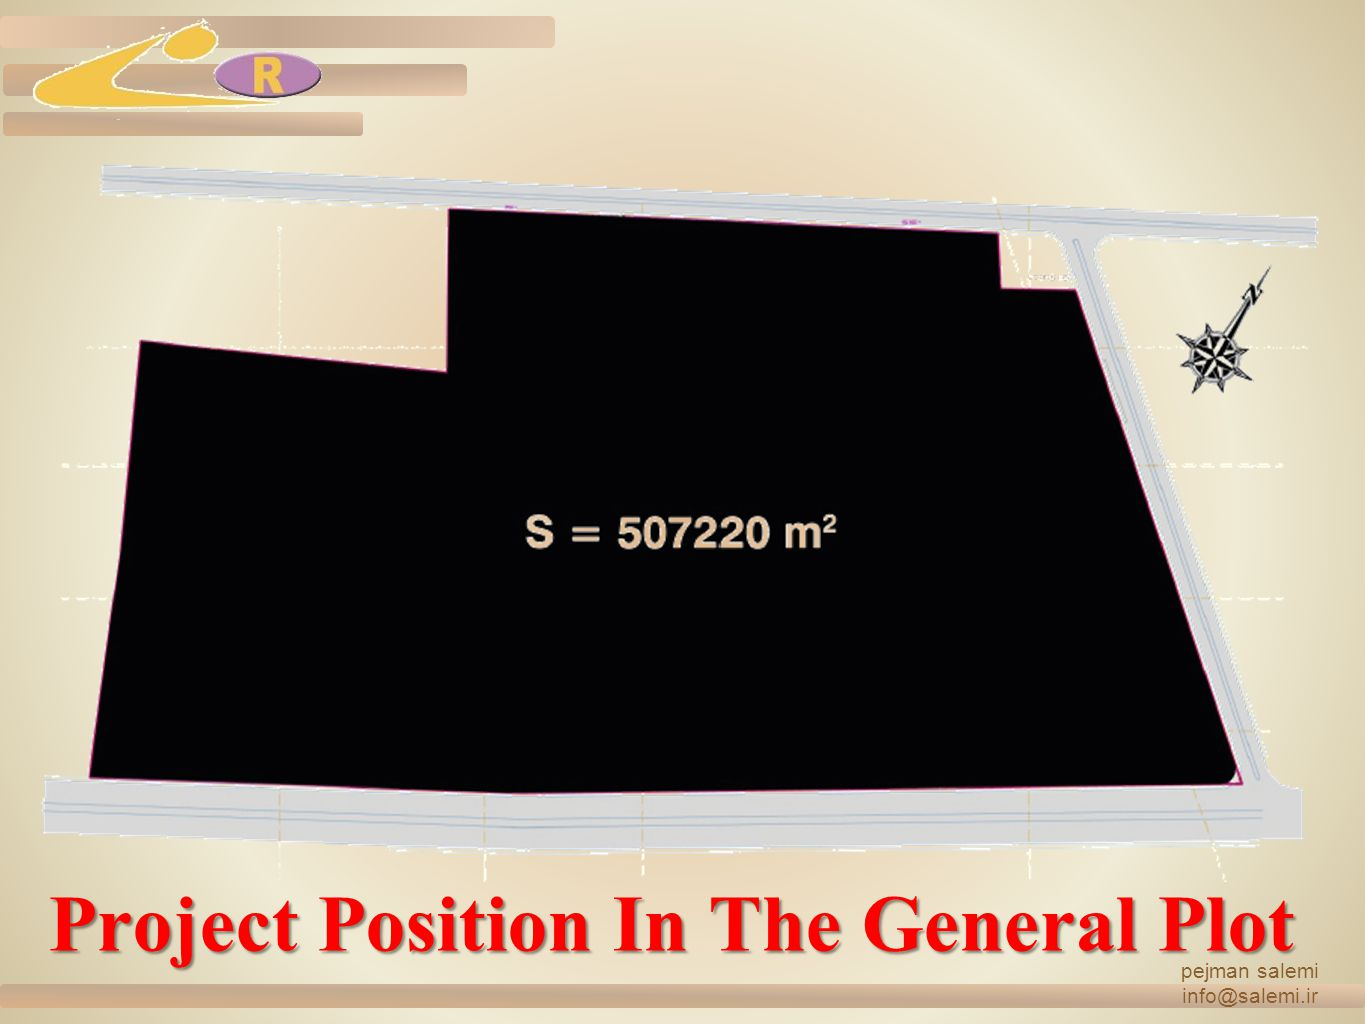 Project Position In The General Plot